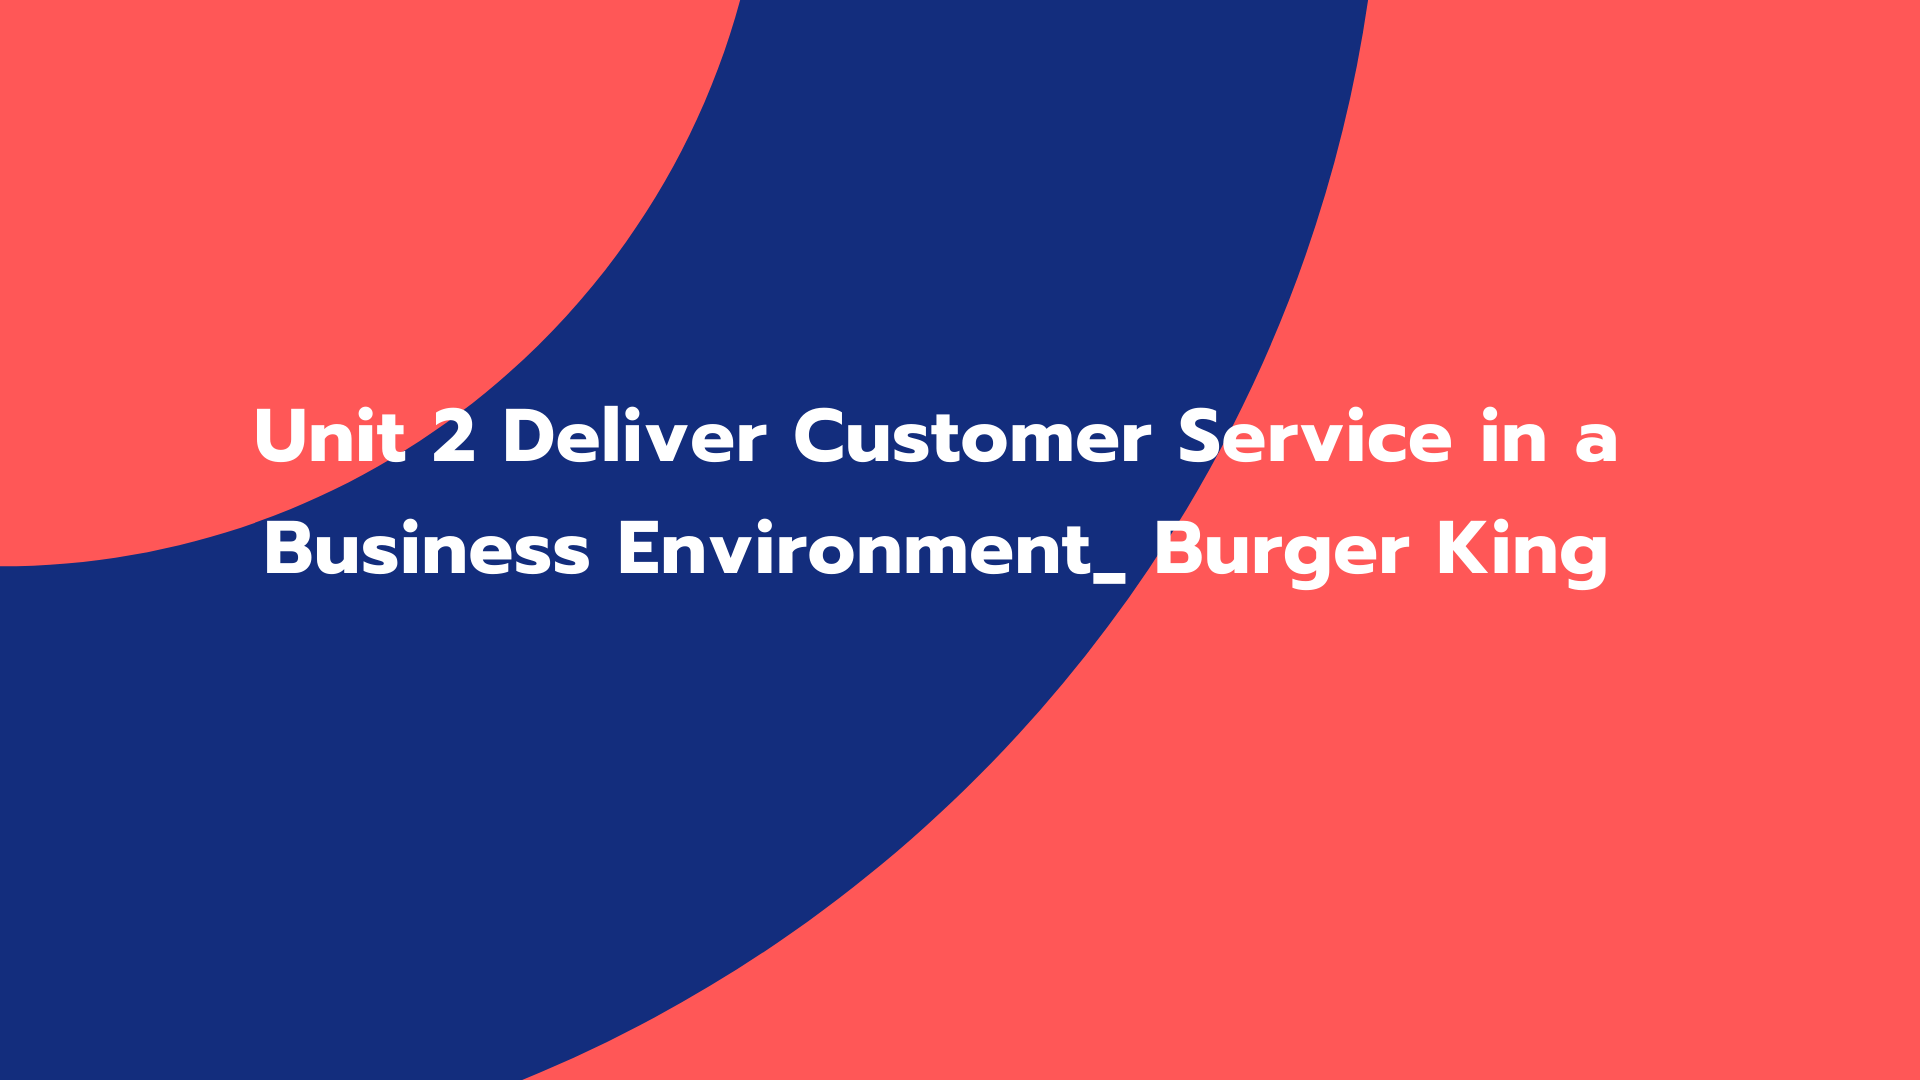 Unit 2 Deliver Customer Service in a Business Environment_ Burger King